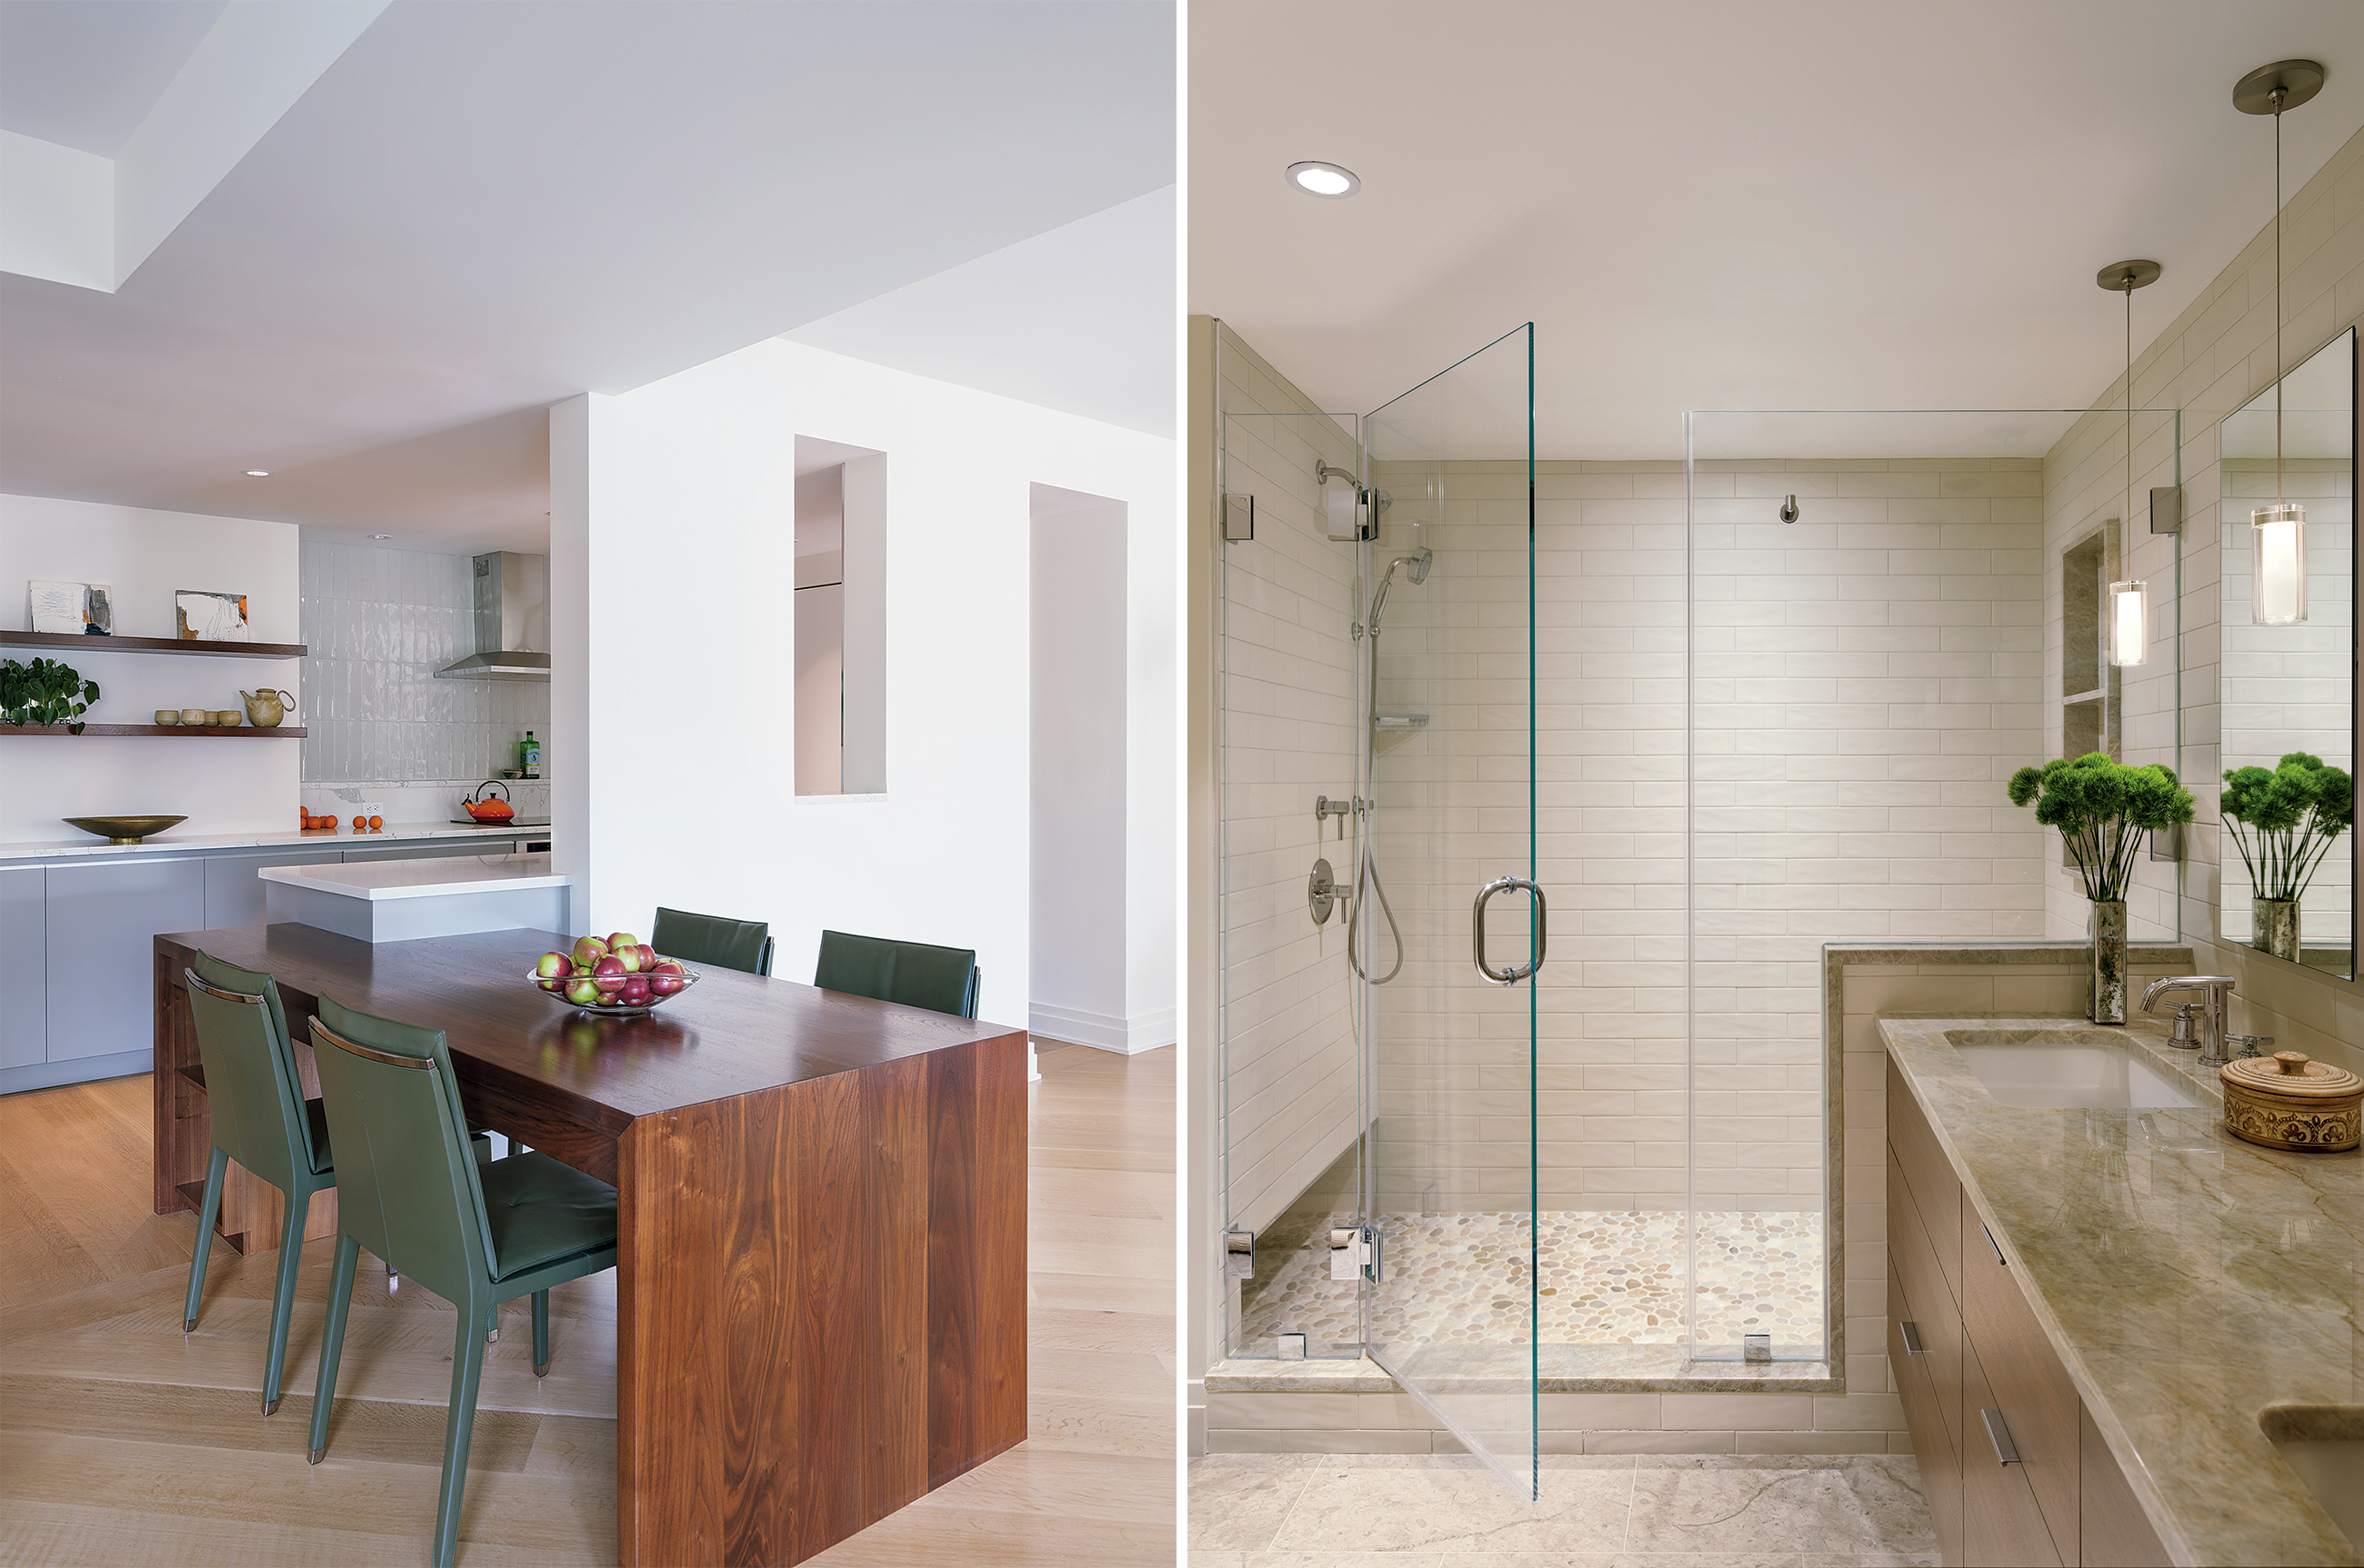 The homeowners' architect designed the built-in breakfast table, which can double as a workspace. The renovated master bathroom includes plenty of natural stone and a large walk-in shower that will be able to accommodate the couple as they age in place. Photographs by Angie Seckinger.